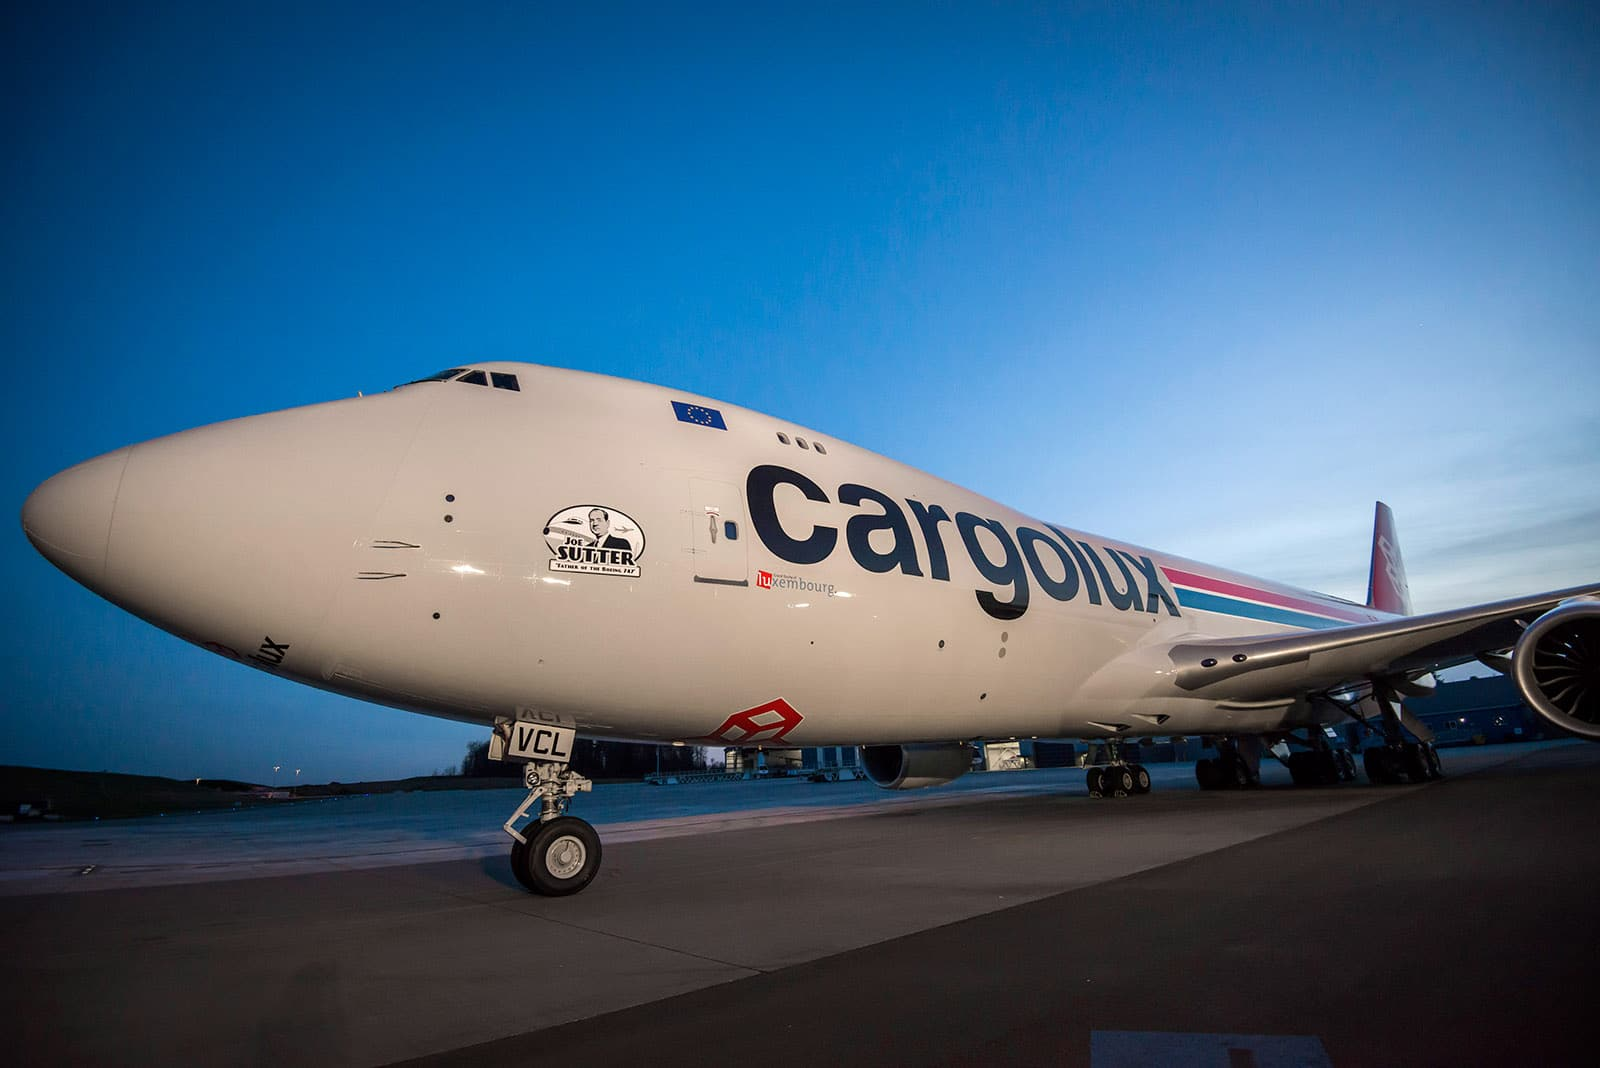 Boeing and Cargolux Airlines Celebrate 30th Direct Delivery of a 747 Freighter 747-8F